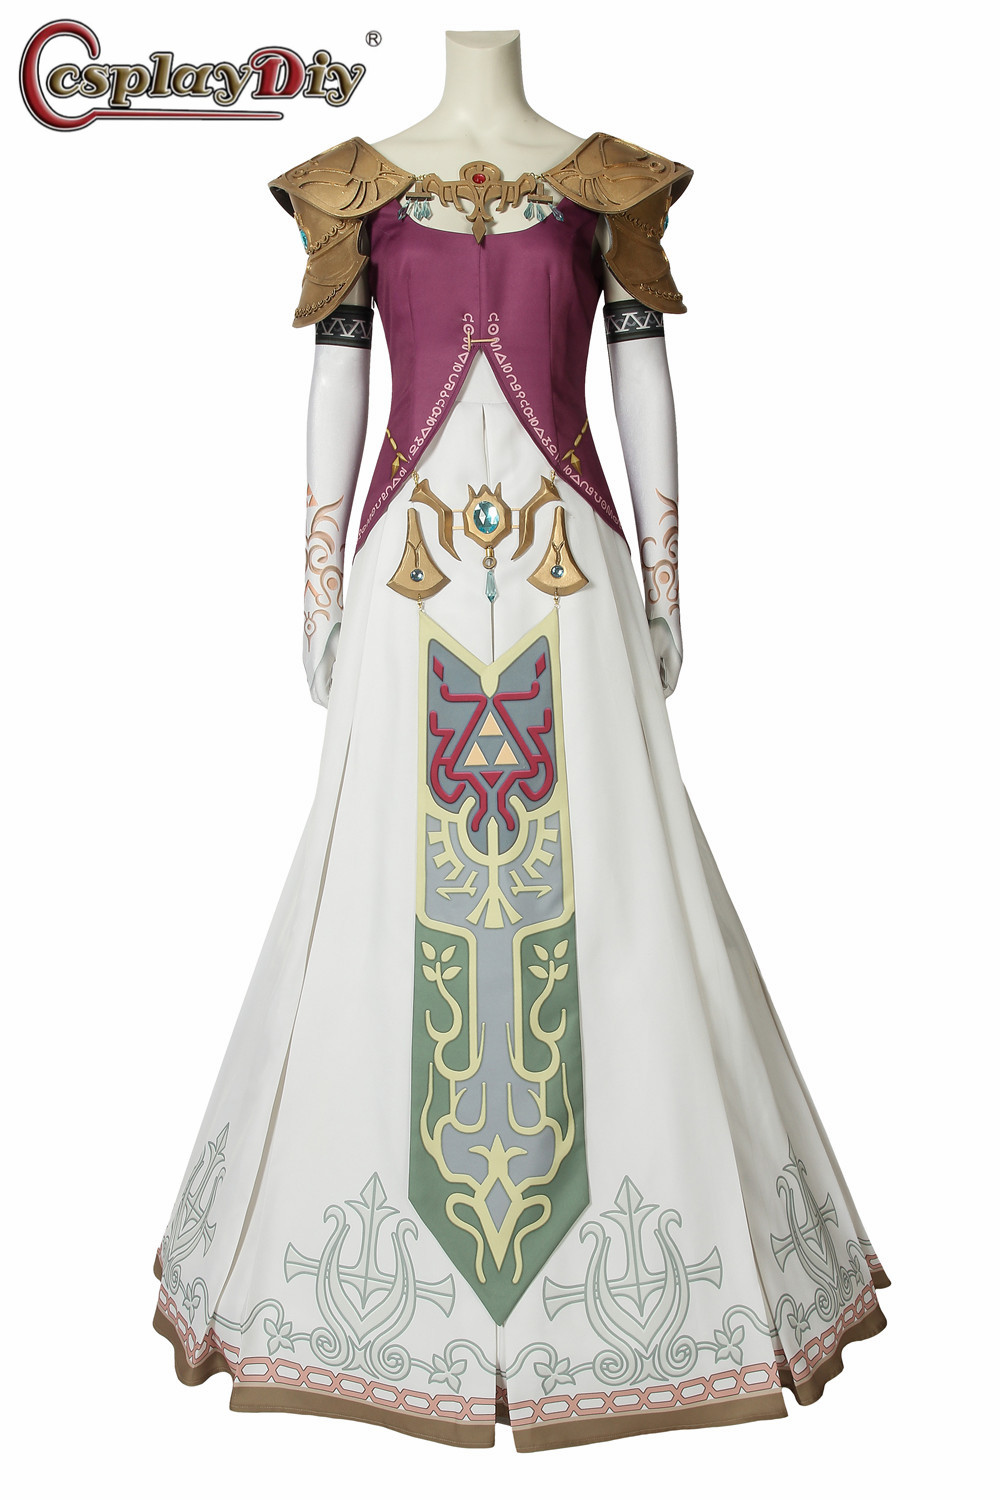 Cosplaydiy The Legend of Zelda Twilight Princess Robe Robes Cosplay Costume Halloween Ensemble Complet Tenues Custom Made